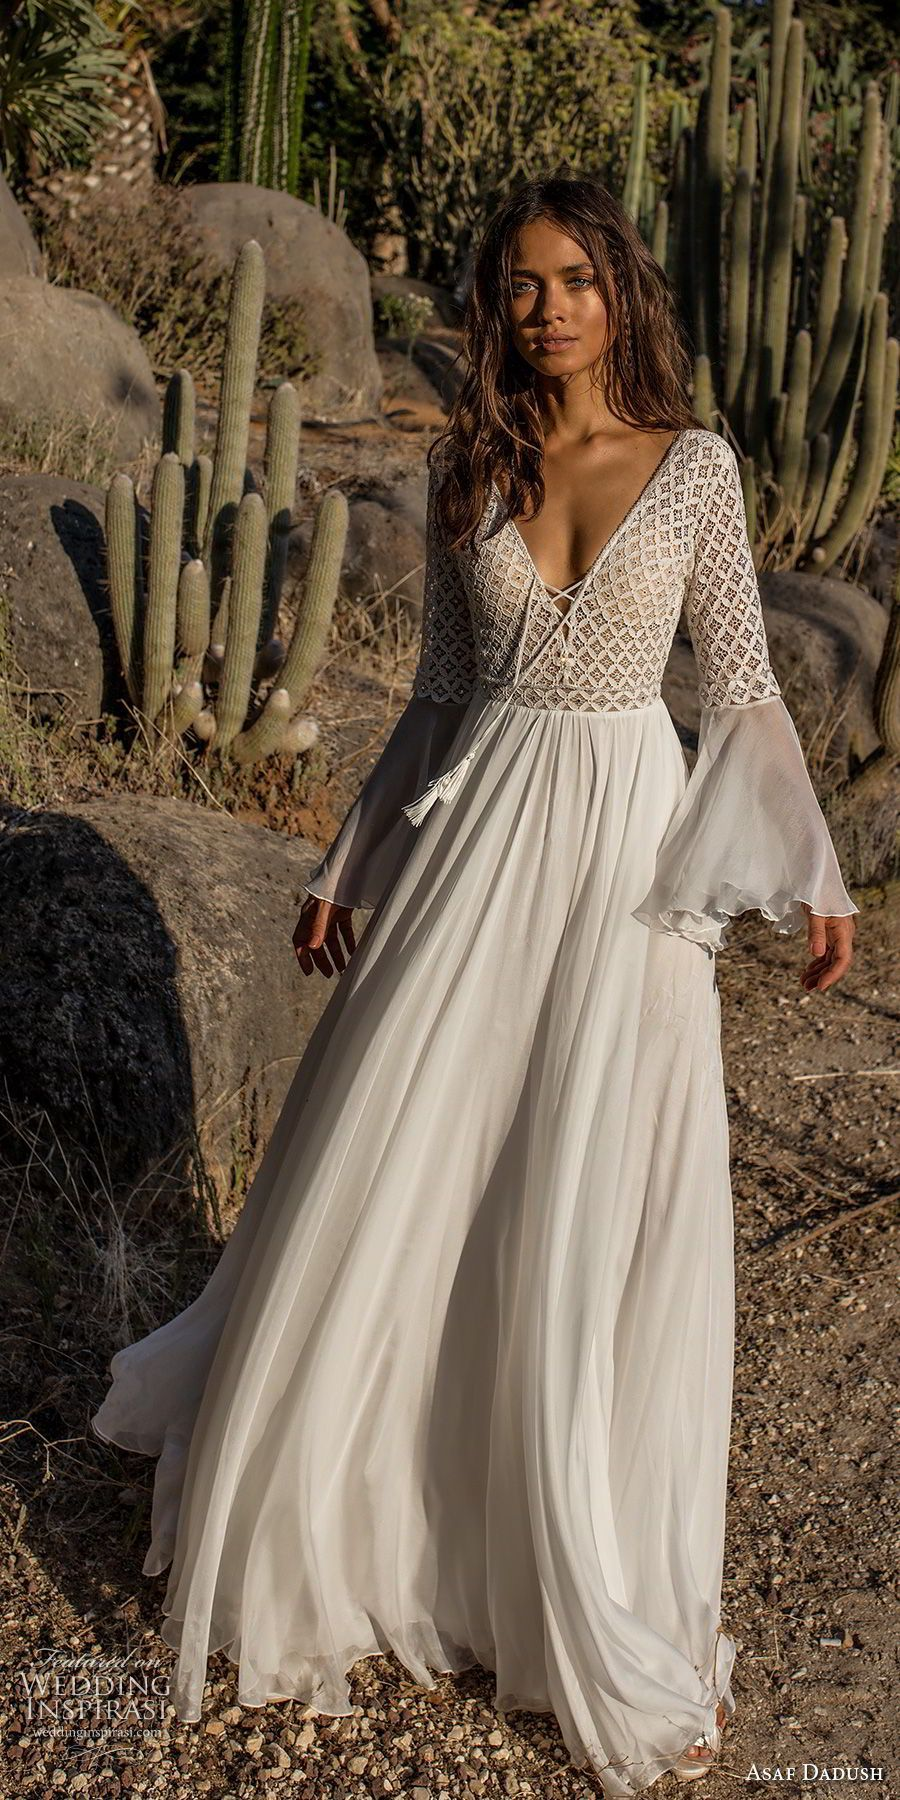 Asaf dadush bridal long lantern sleeves deep v neckline heavily